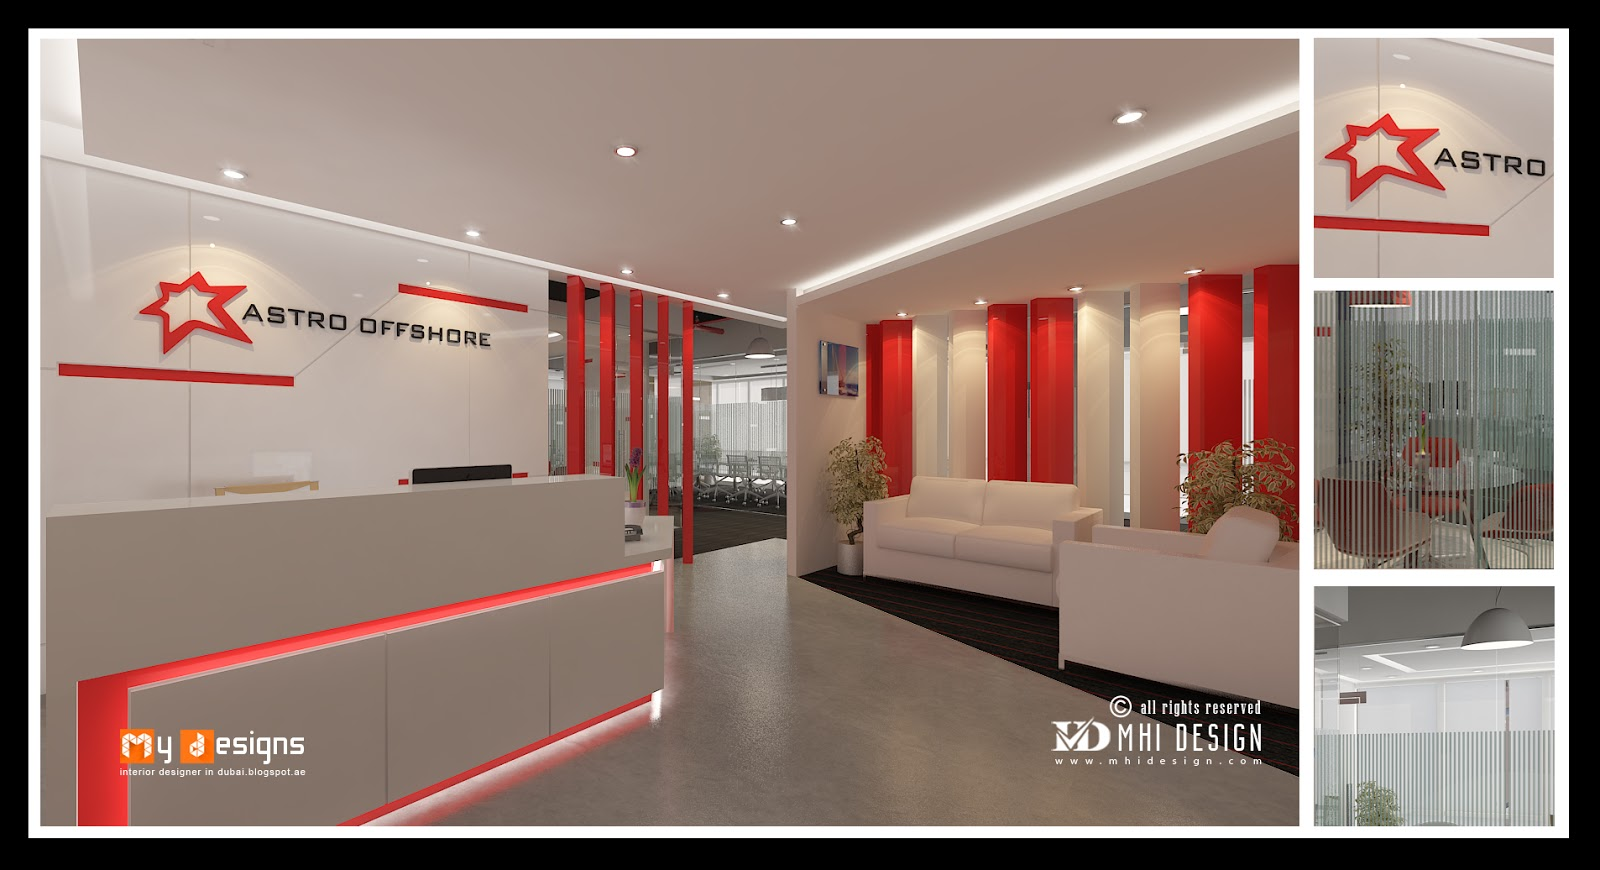 Office interior designs in dubai interior designer in uae for One agency interior design dubai